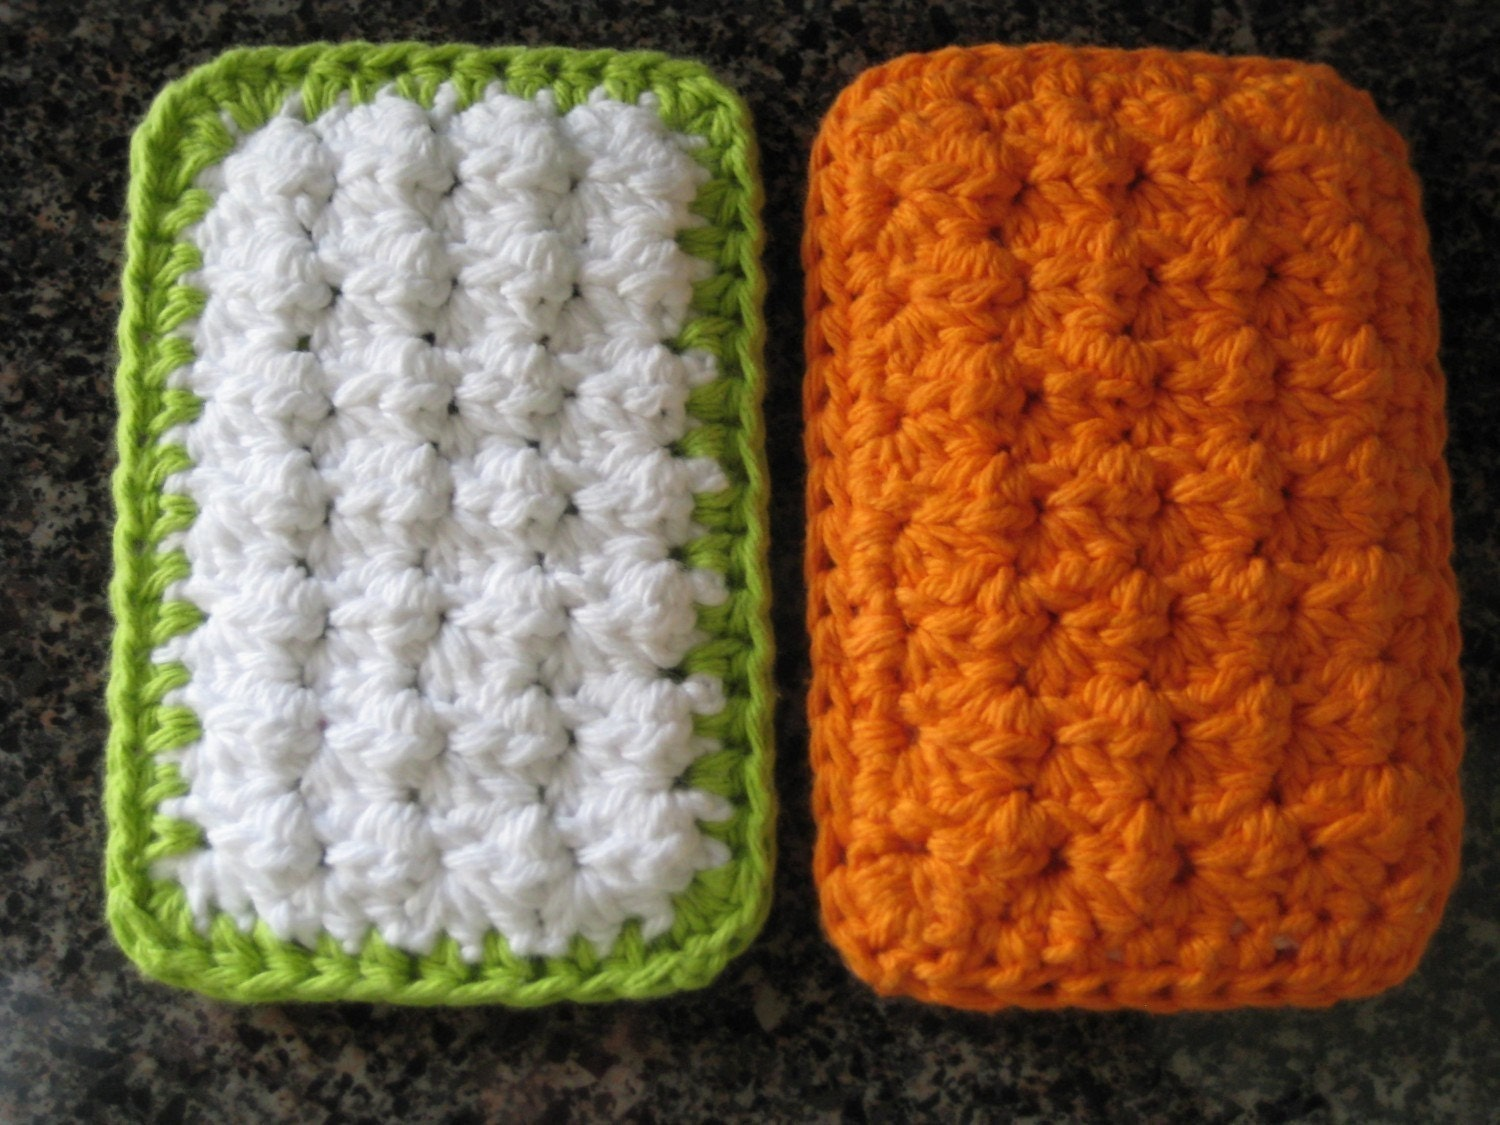 Crocheting Scrubbies With Netting : PATTERN Cotton Crochet Cloth Sponge Scrubbies PATTERN by buyhand